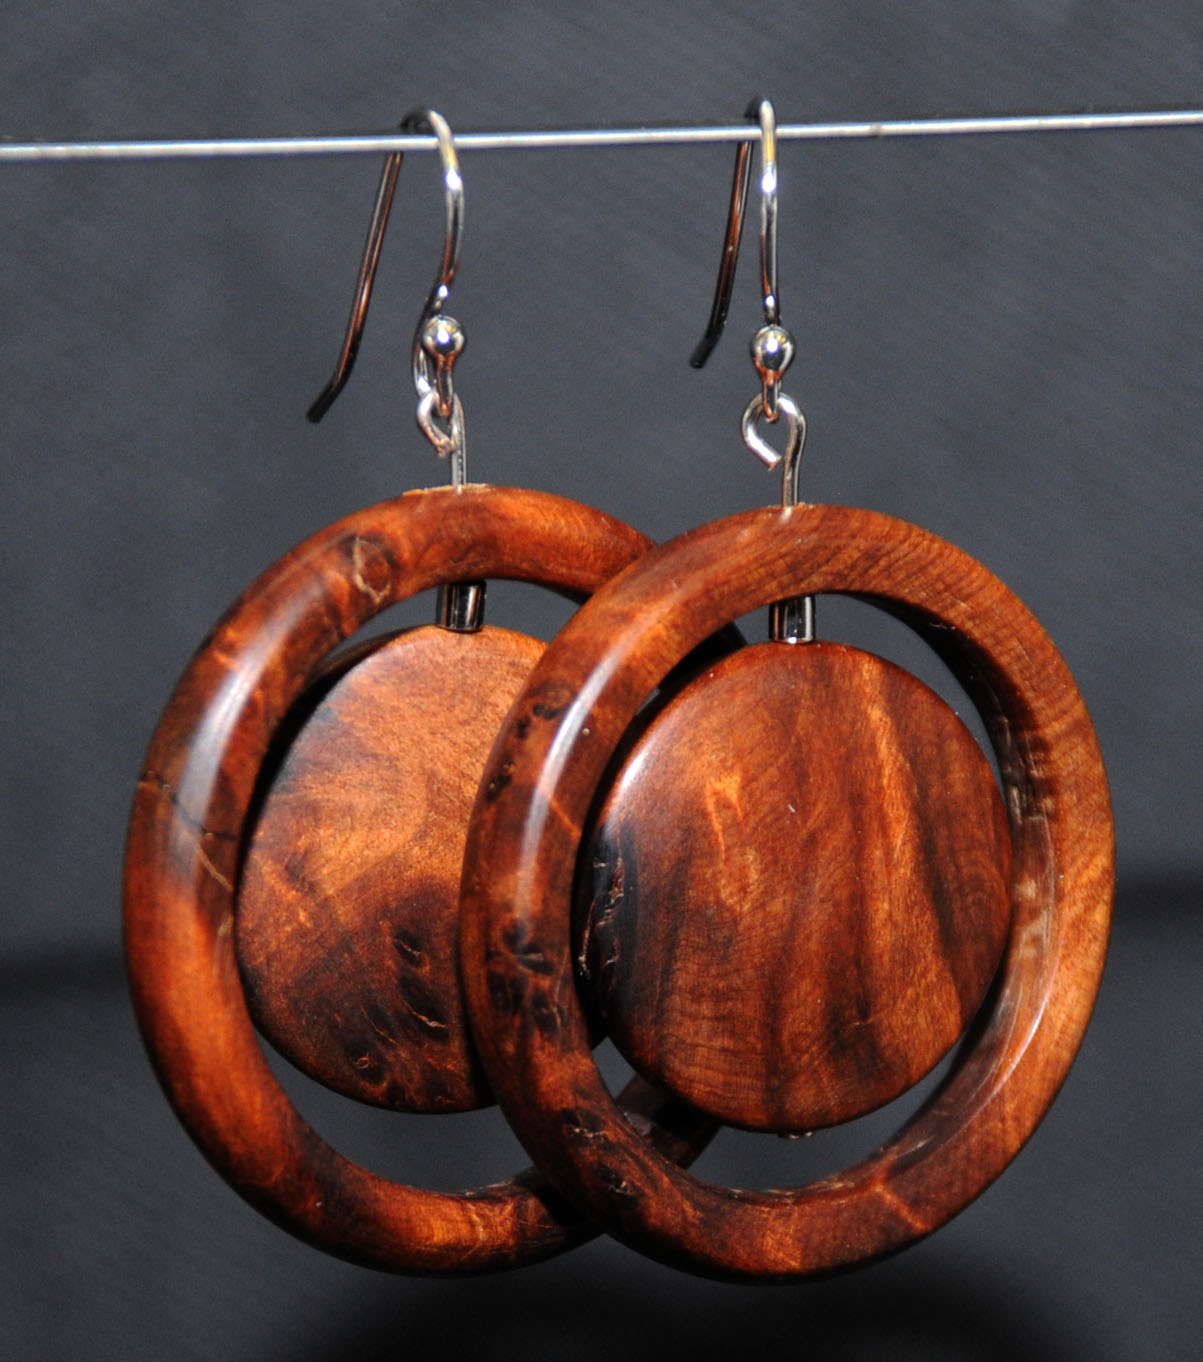 Thuya Burl earrings - crafted by Ian Gilmer